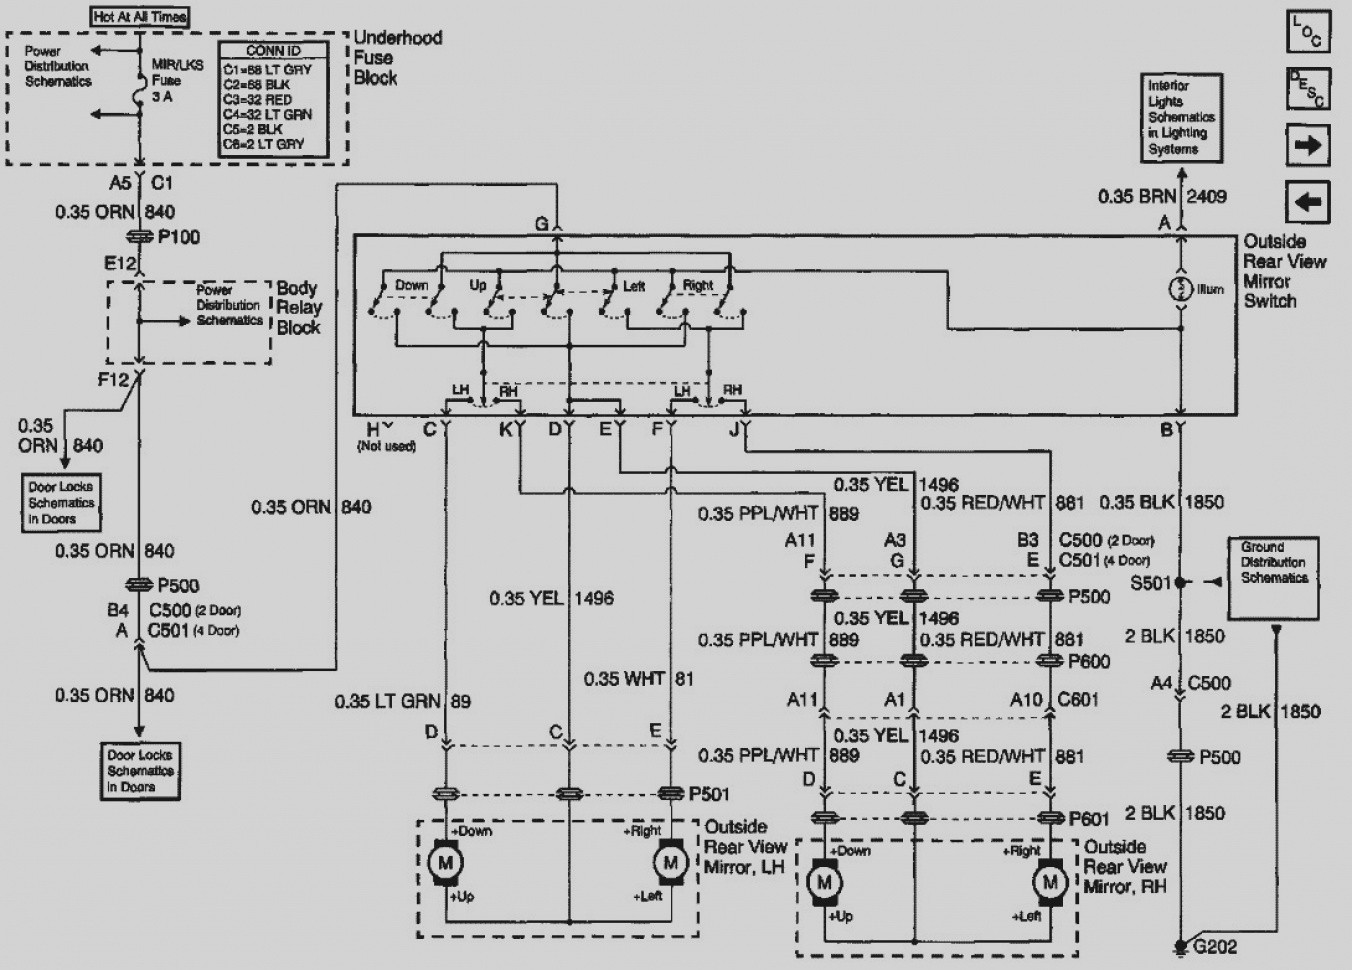 hight resolution of 1999 blazer wiring diagram blog wiring diagram 1999 chevy blazer 4x4 wiring diagram 1999 blazer 4x4 wiring diagram